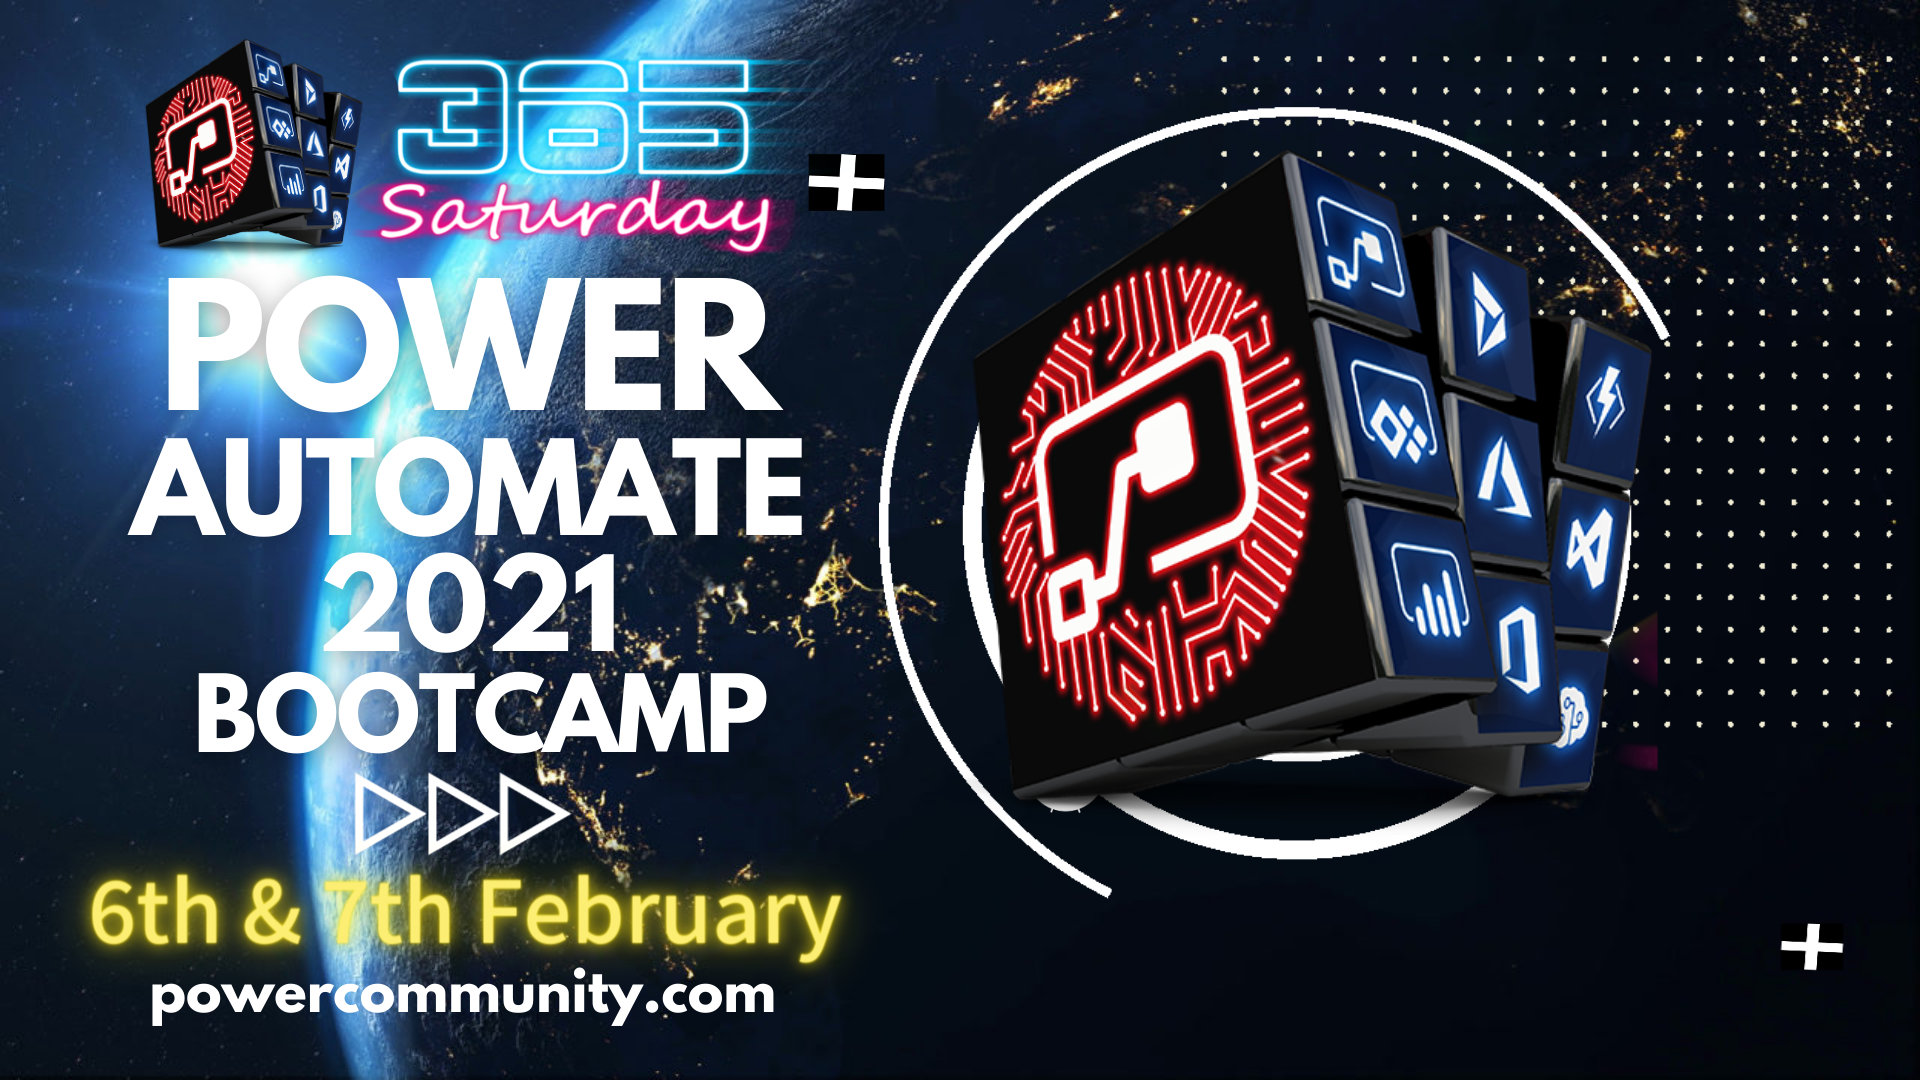 Power Automation Bootcamp 2021